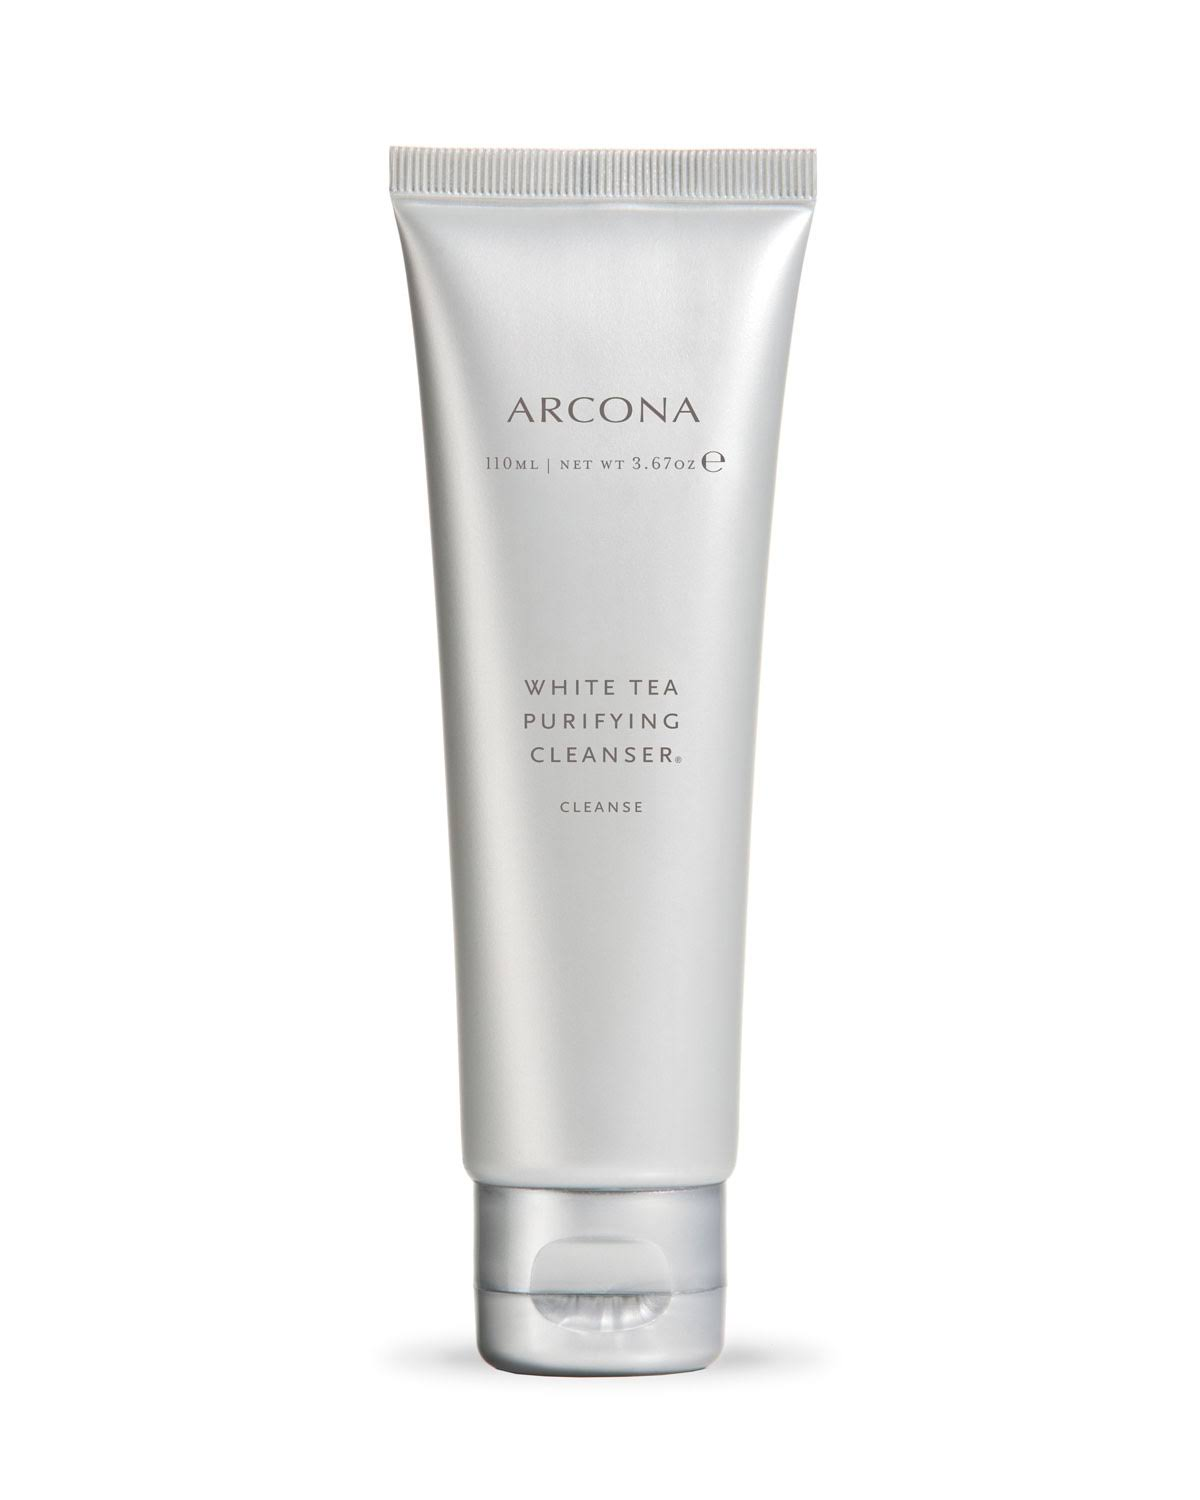 Arcona White Tea Purifying Cleanser - 3.67oz